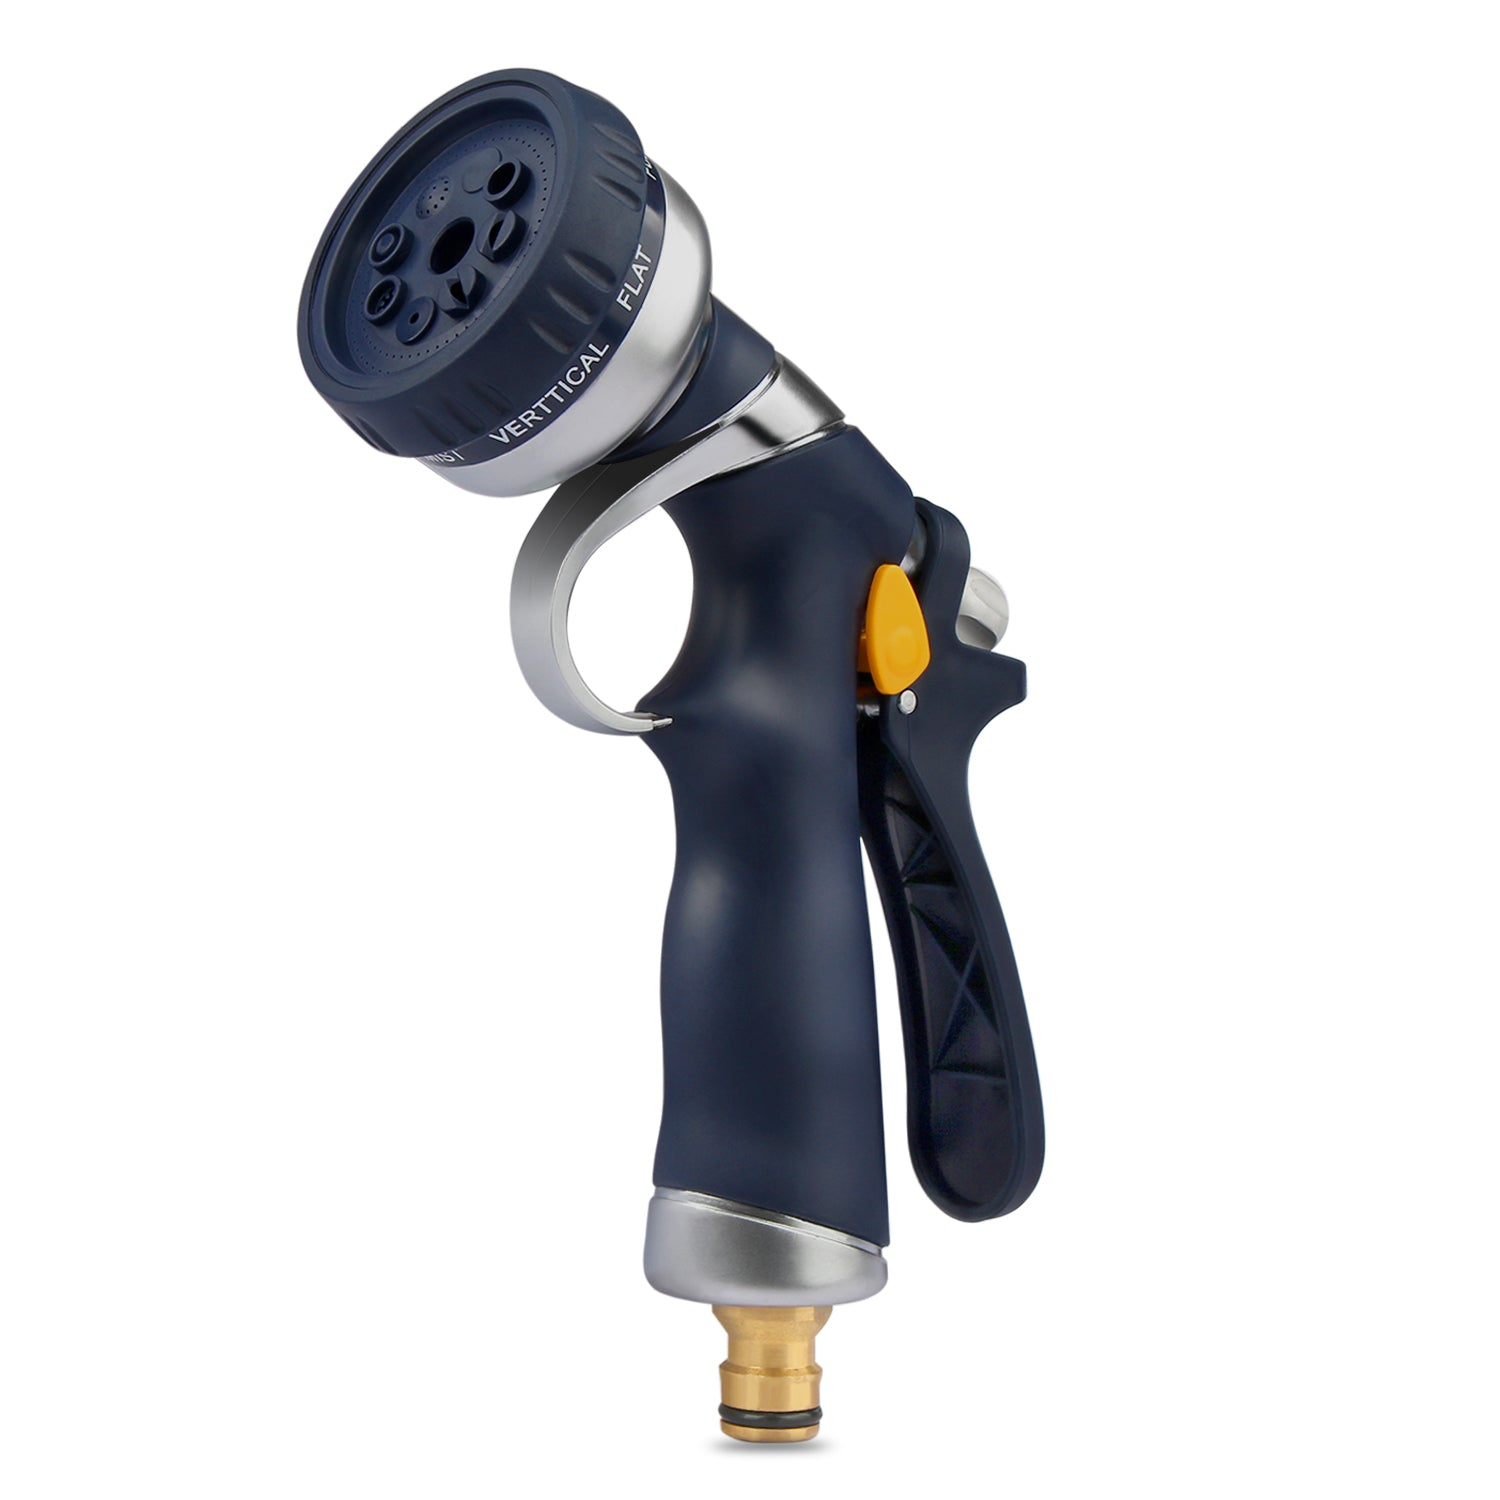 Voxon Garden Hose Pressure Spray Gun for Car Washing Cleaning Watering